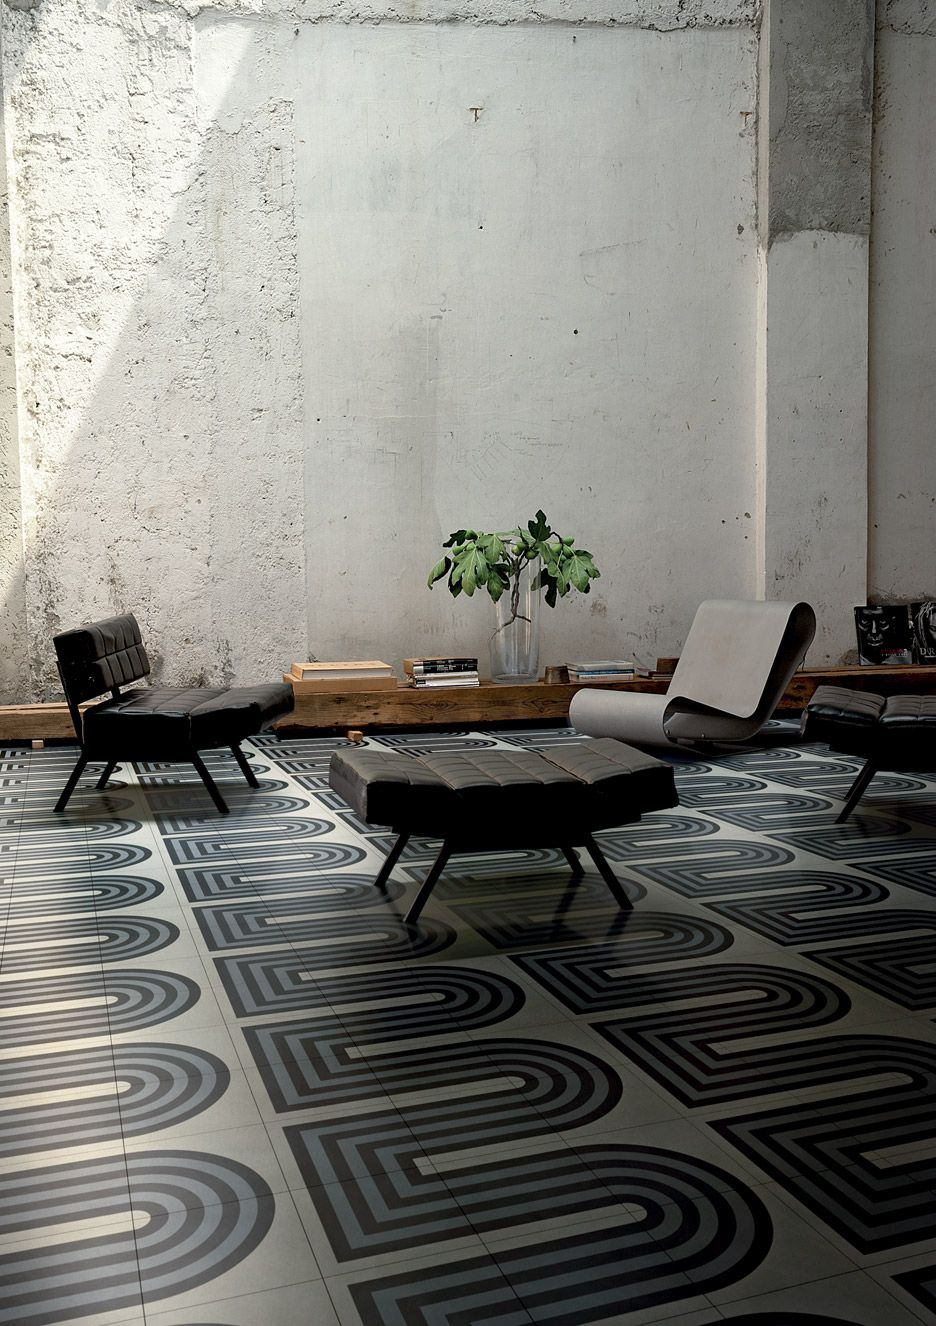 Tom Dixon\u0027s Bisazza tile collection references London\u0027s ...